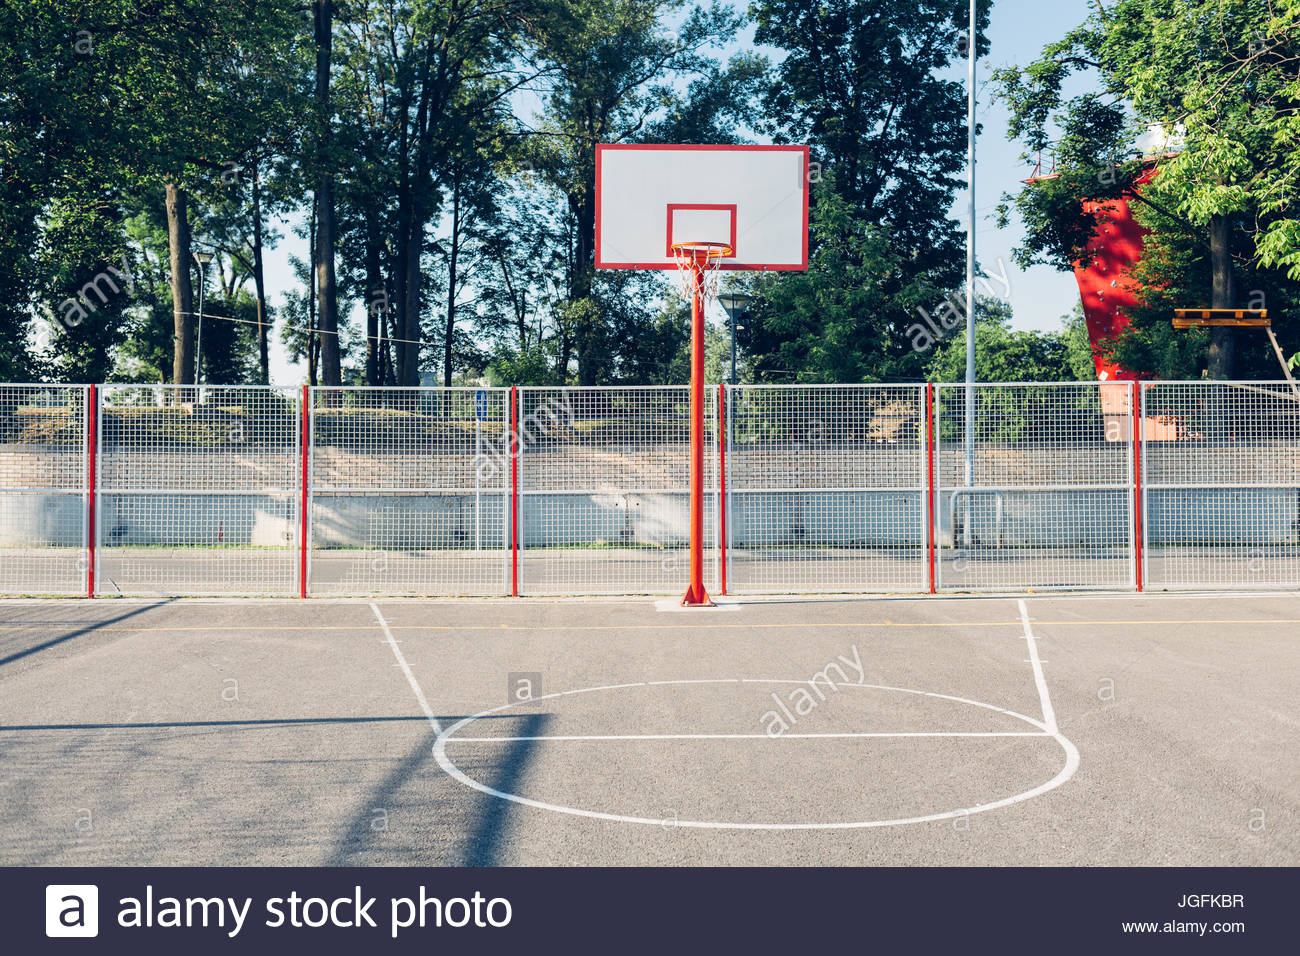 Outdoor basketball court - Stock Image